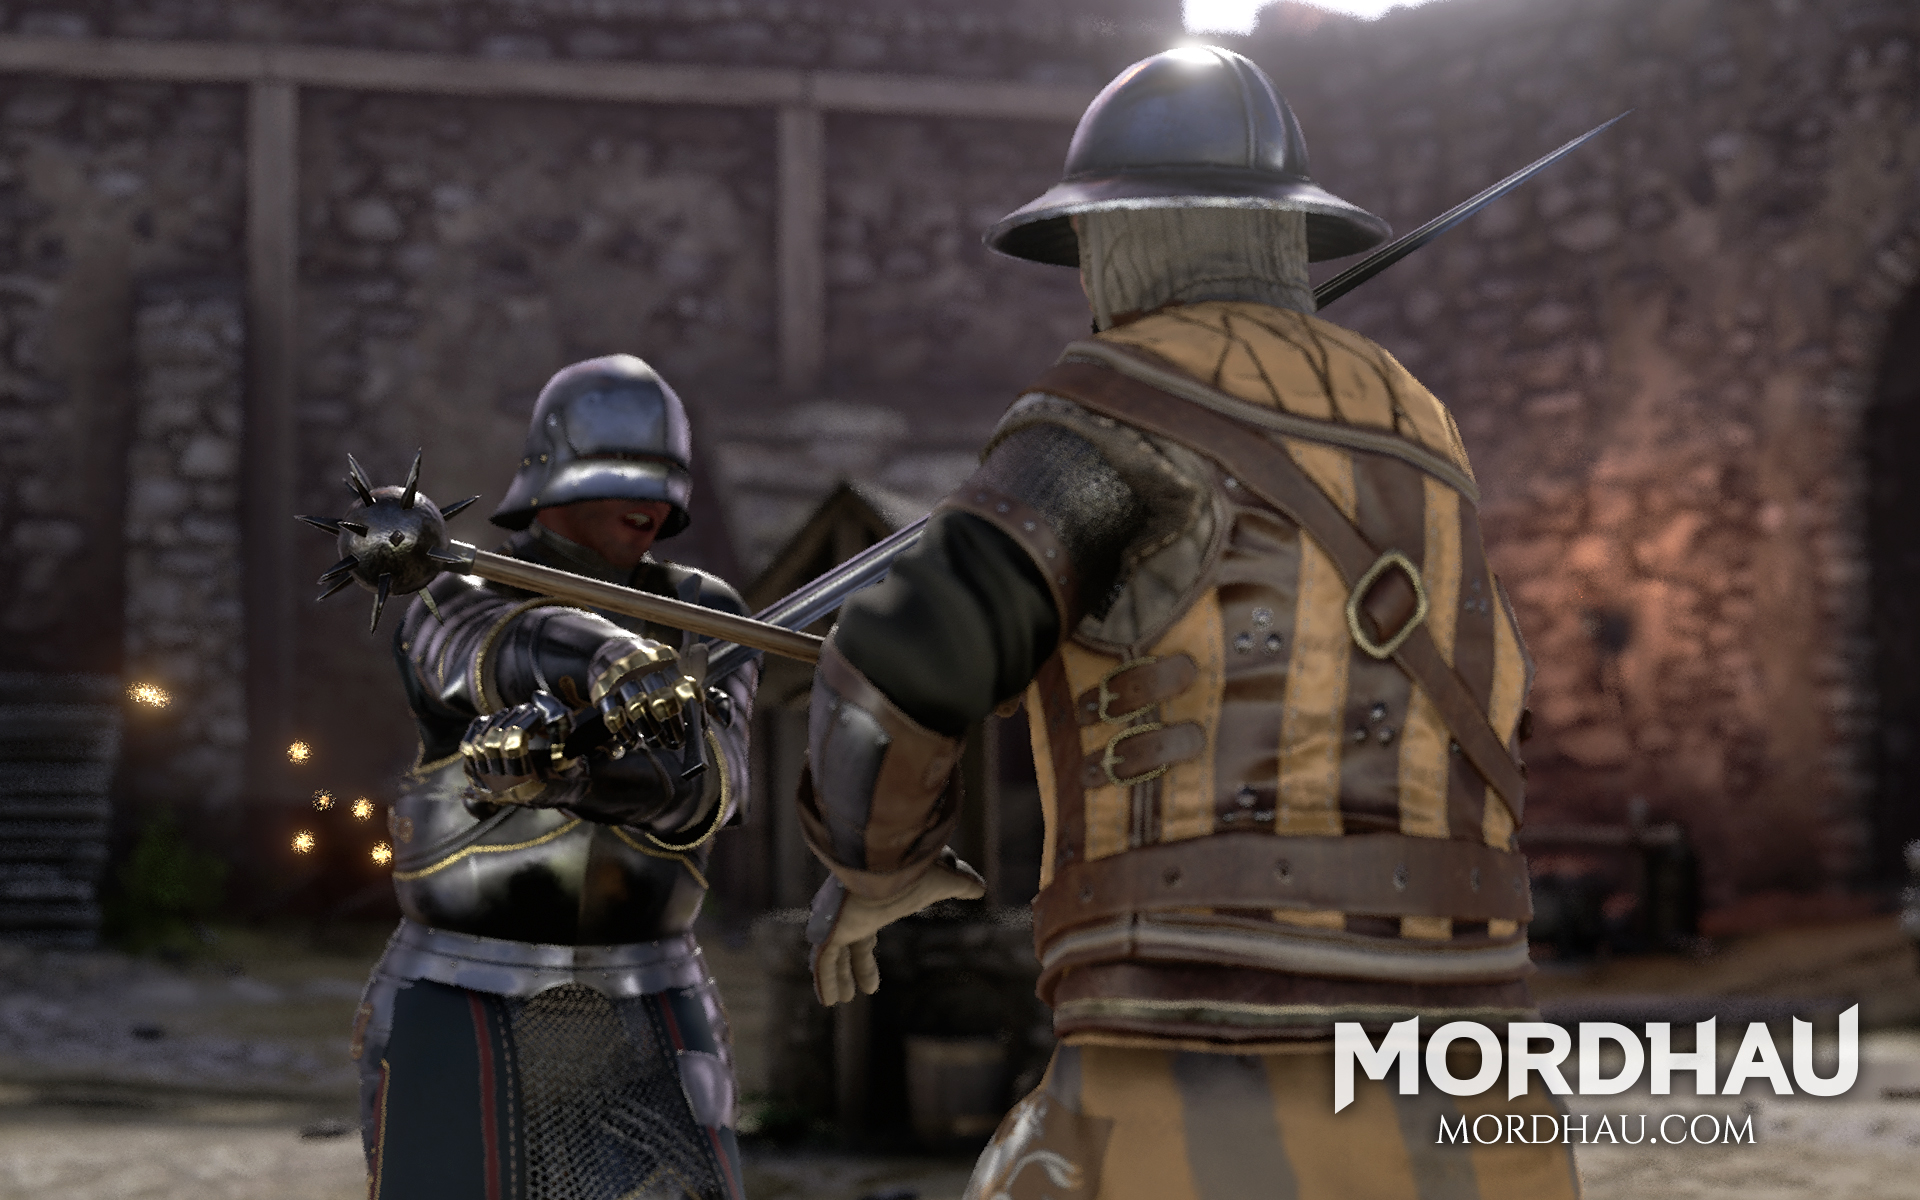 Mordhau Not Getting XP - Why am I Not Getting XP and Gold